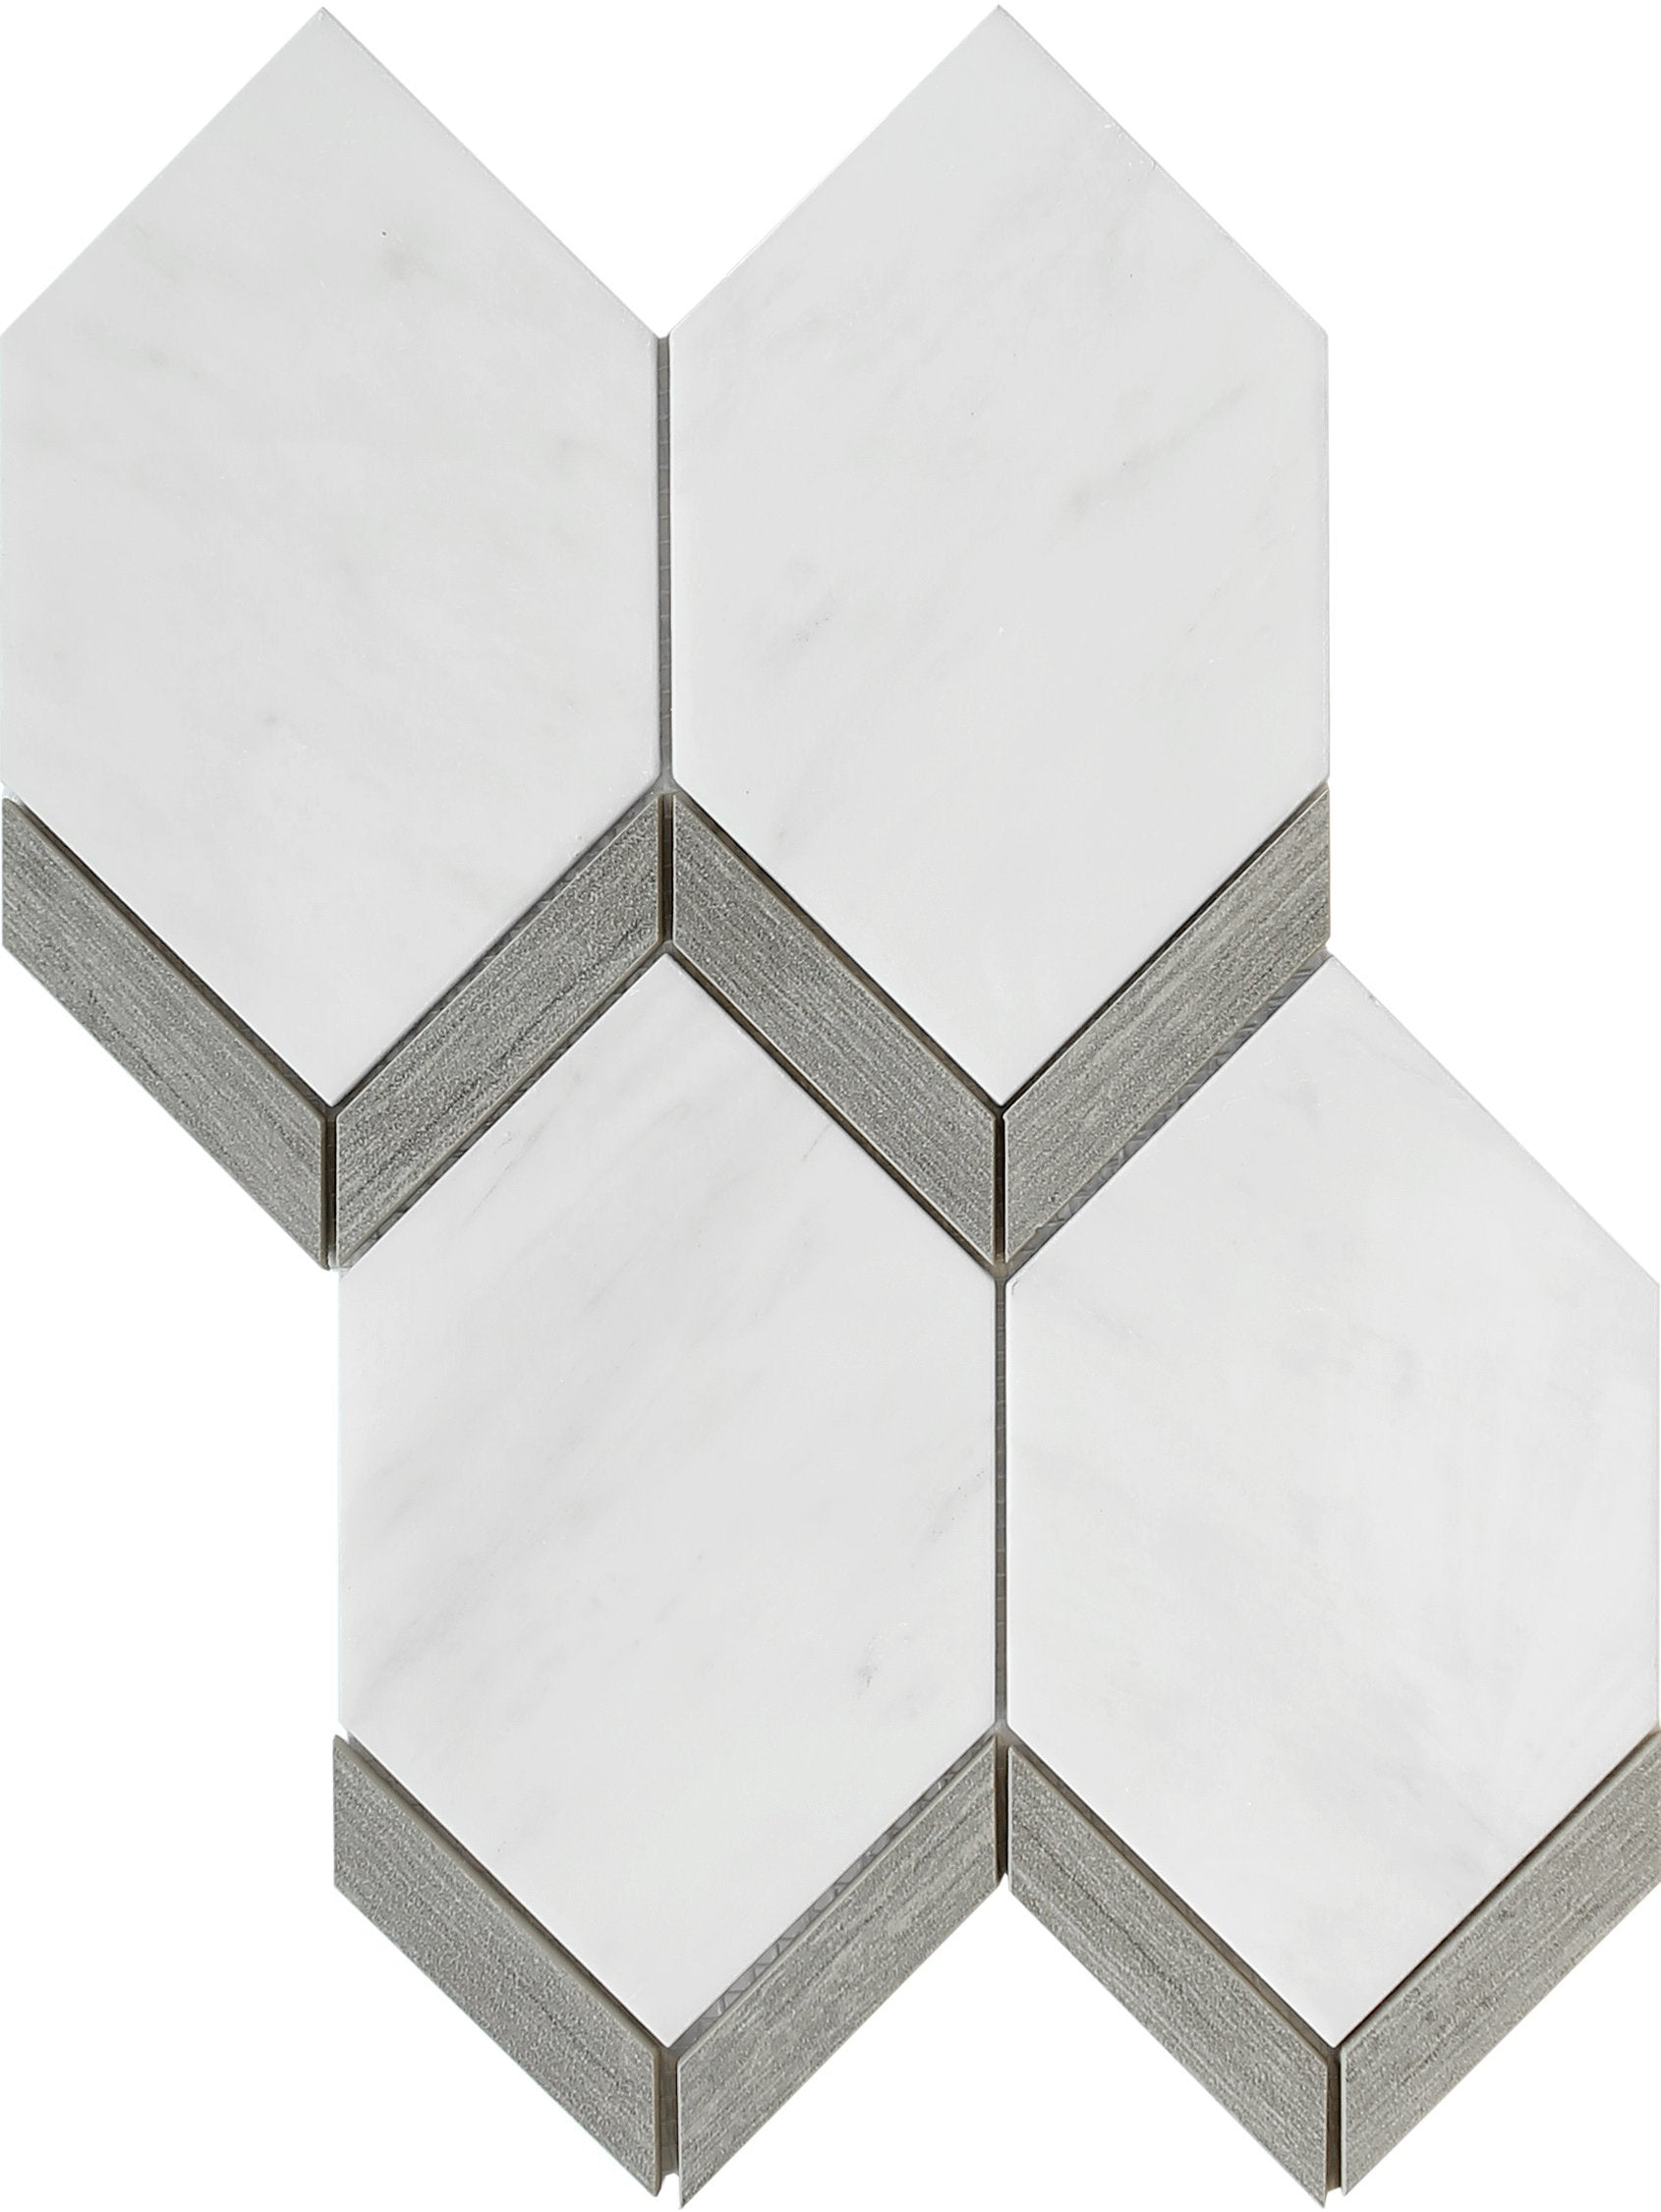 Intrigue Gray Picket Tile